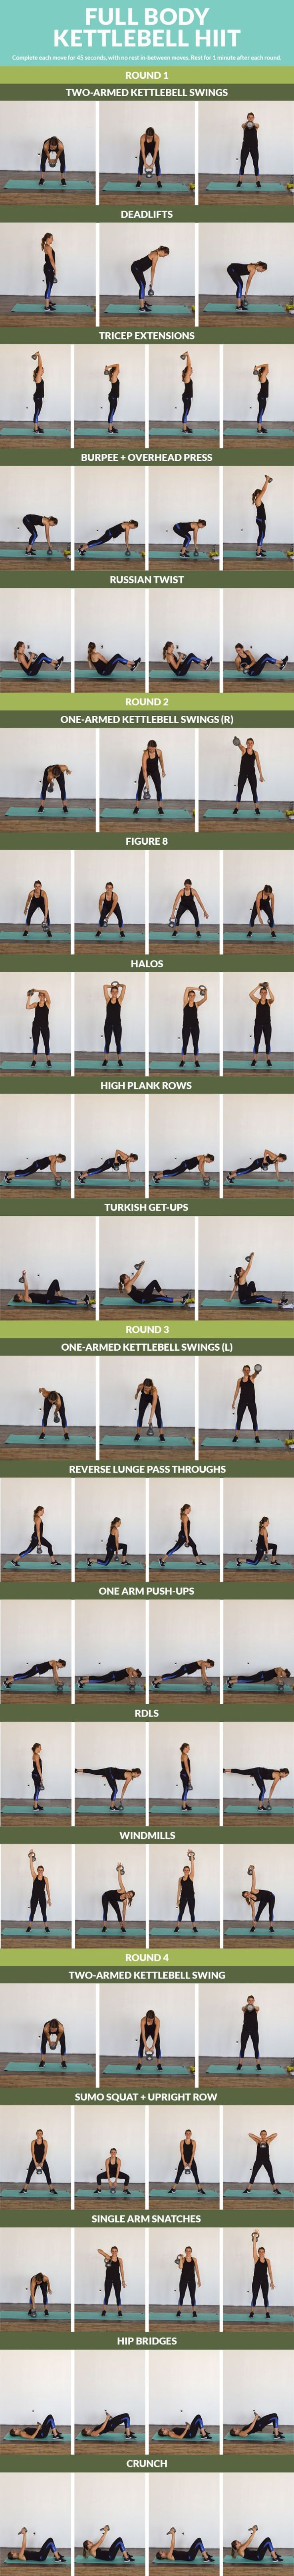 Wont six-pack Abs, gain muscle or weight loss, this workout plan is great for women. with FREE WEEKENDS and No-Gym or equipment ! #WeightLossforWomen #kettlebellexerciseforwomen